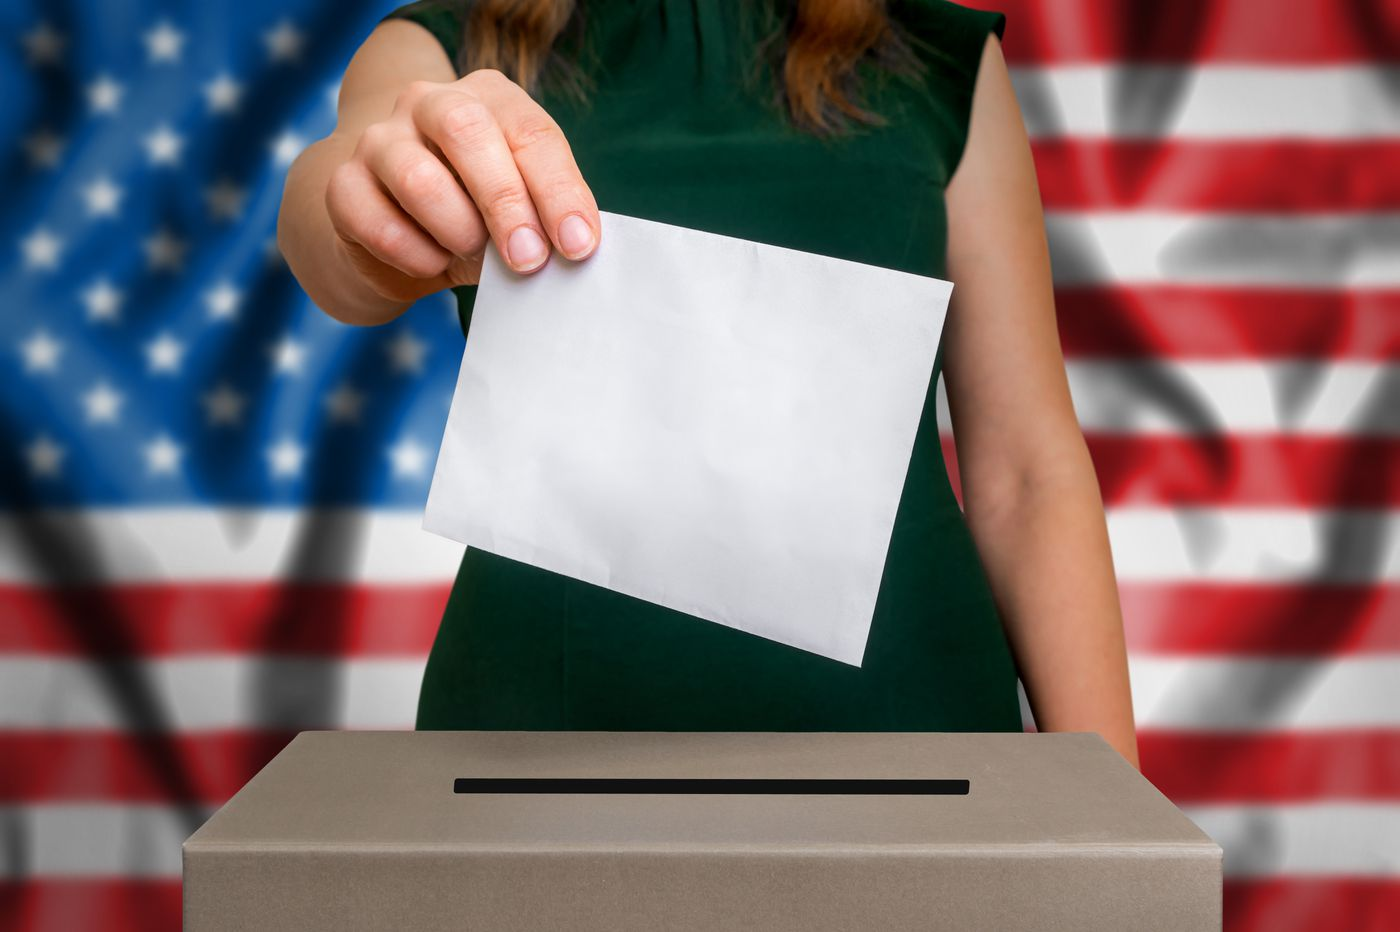 N.J. ballot question results: $500 million for vo-tech, school security is approved